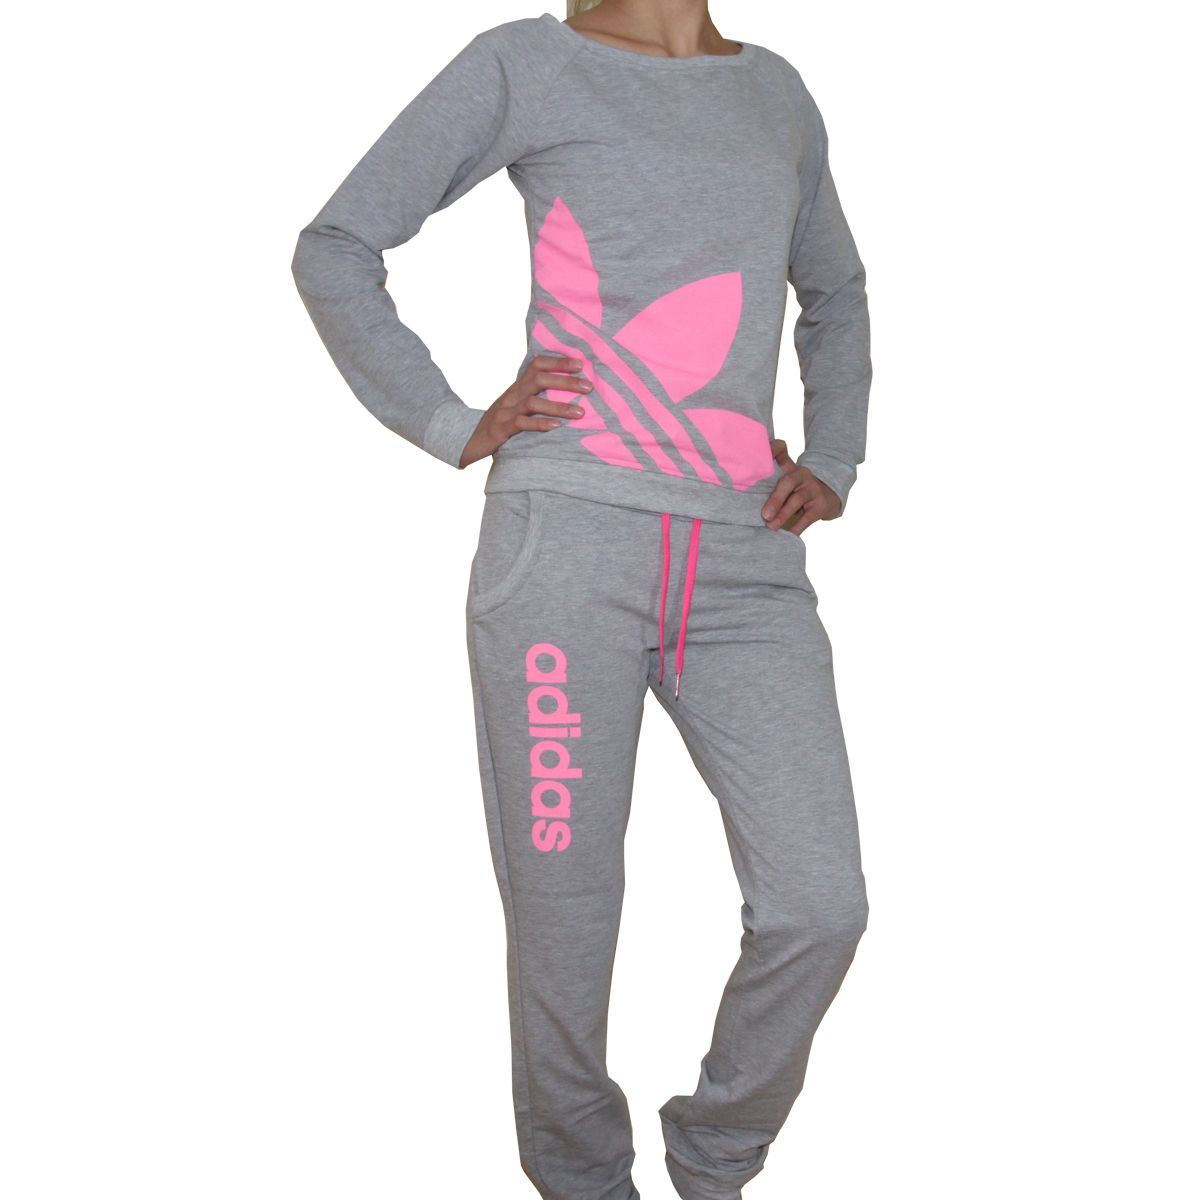 5cbe9f3384be Pink and Gray Adidas Track Suit